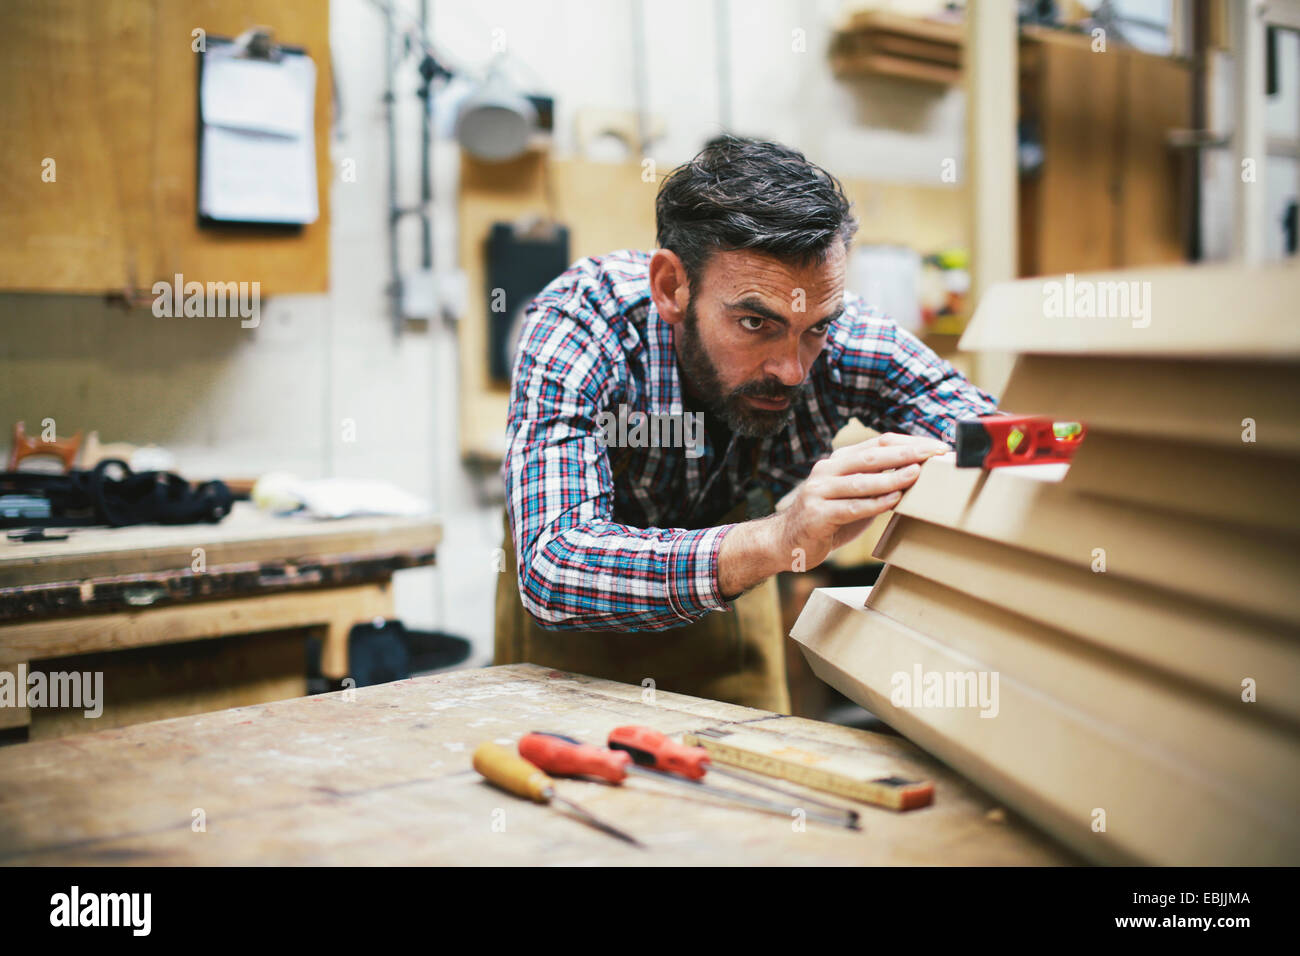 Mature craftsman using spirit level in pipe organ workshop - Stock Image